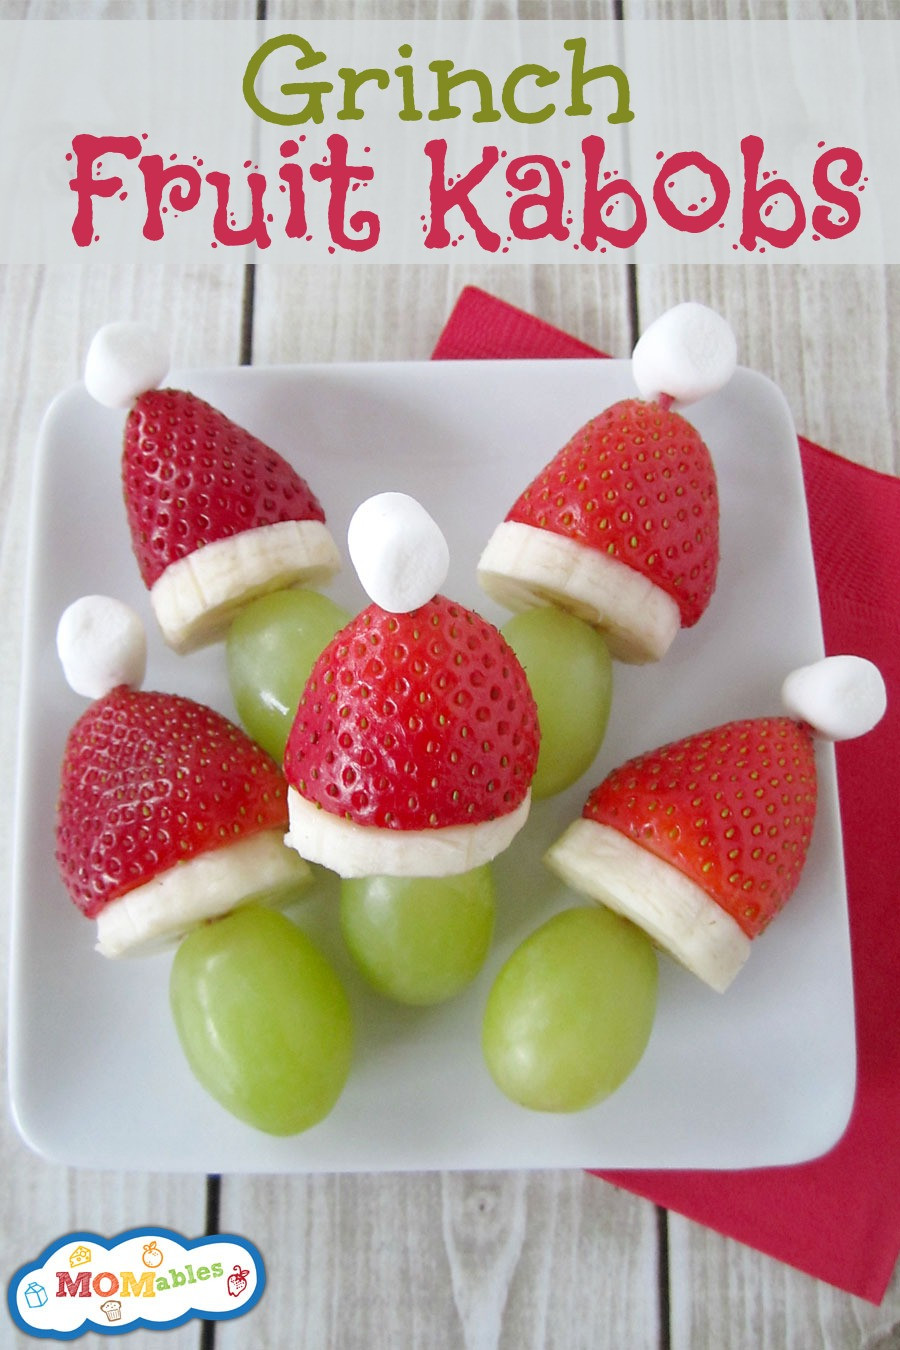 Healthy Christmas Snacks For School Parties  7 Fun & Healthy Food Ideas for the School Party